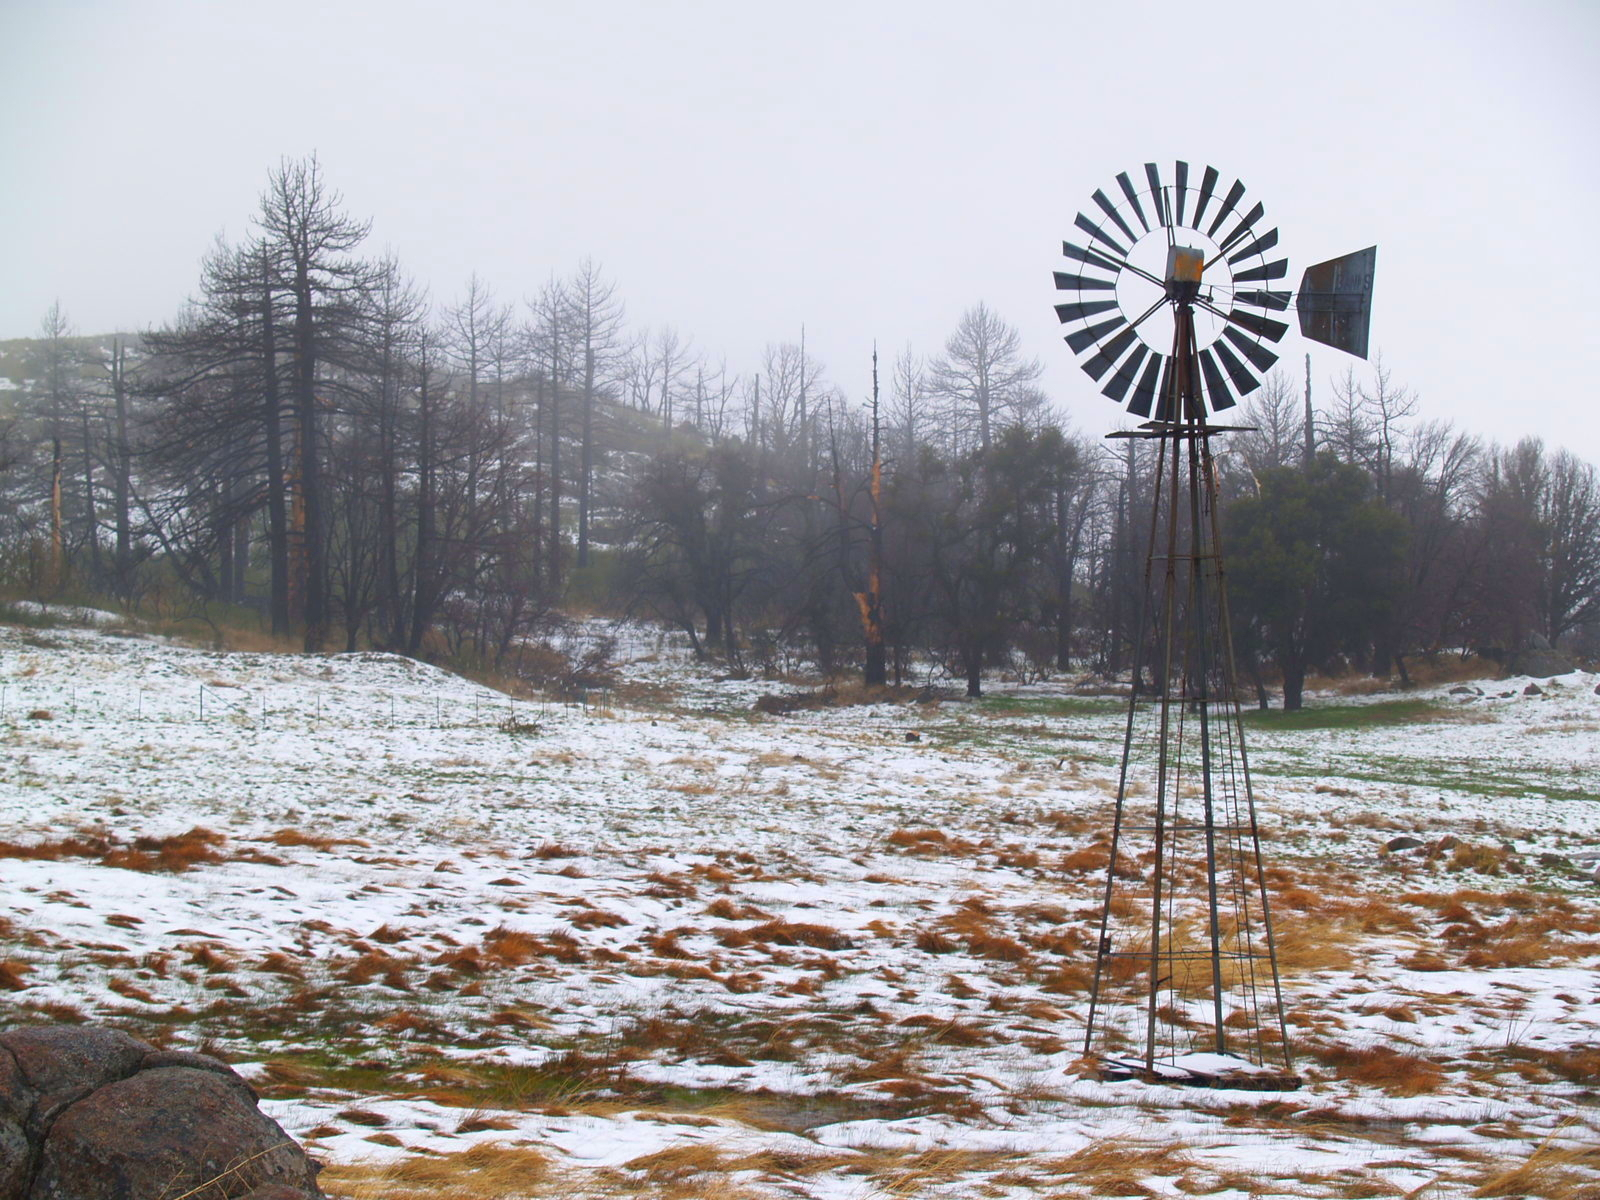 Rain, heavy snow expected with latest storm in San Diego County